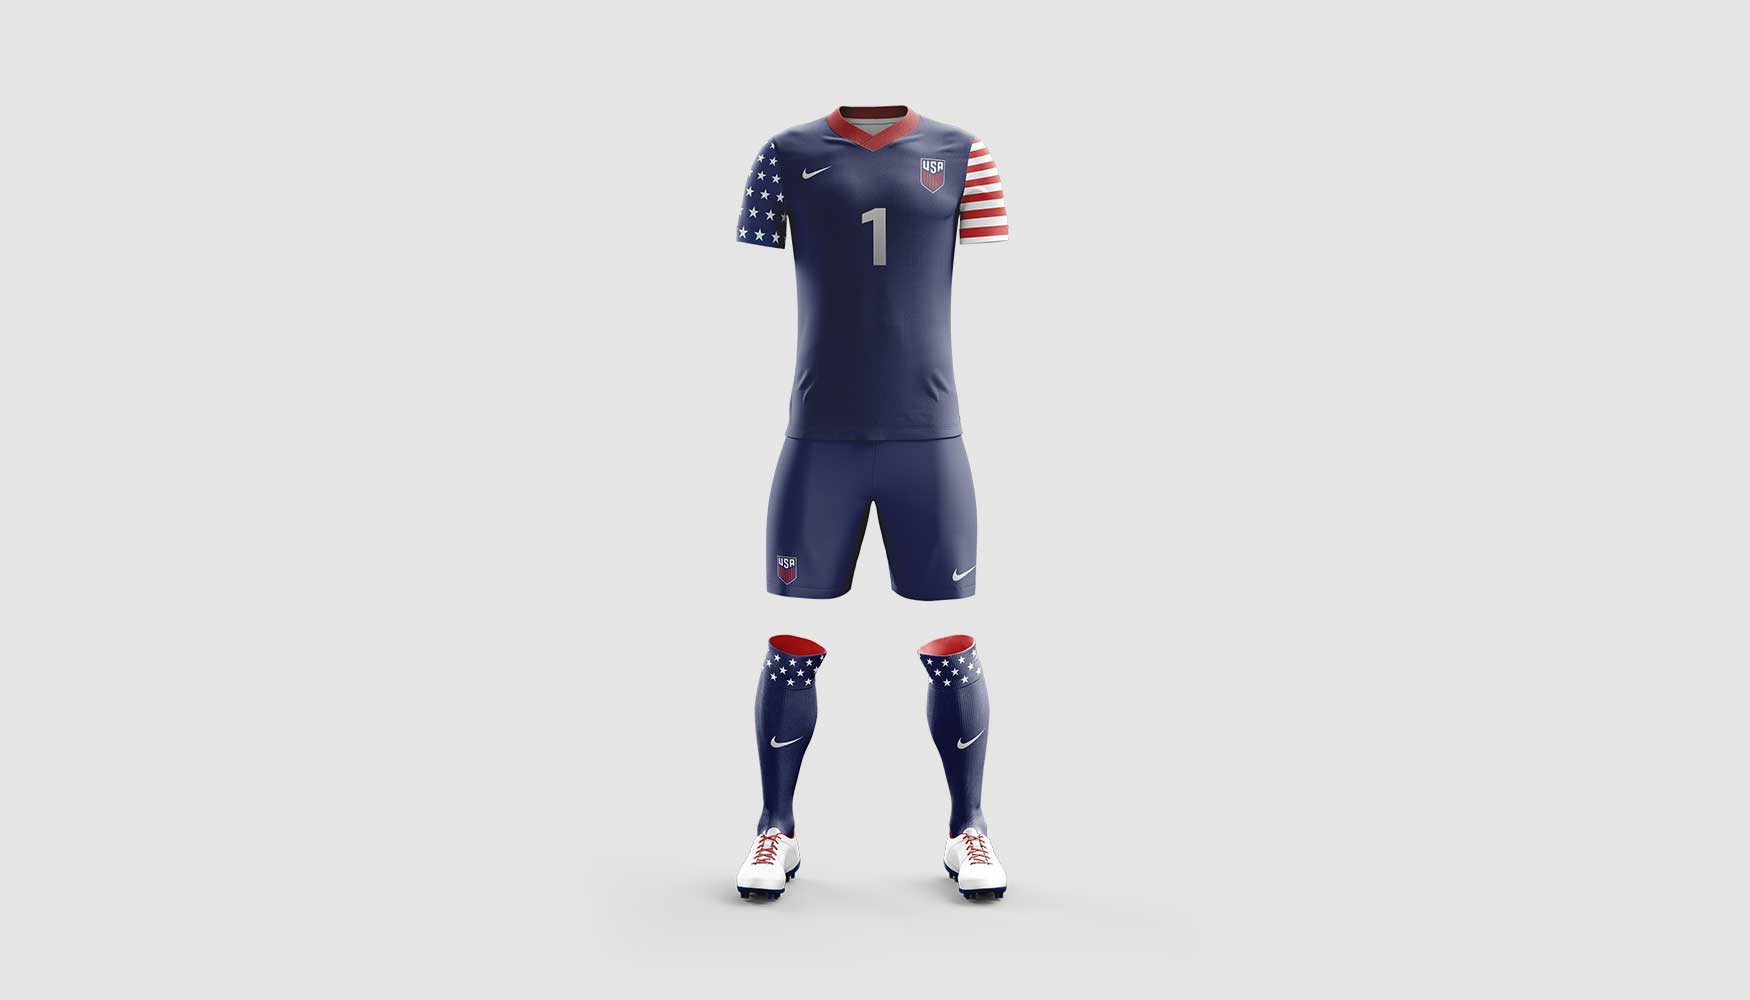 0e977cd20 ... Navy Nike USA Soccer Jersey Concept Navy Blue Nike Soccer Jersey  Concept Design Red Nike USMNT Soccer Jersey Design US Men s National Team  ...